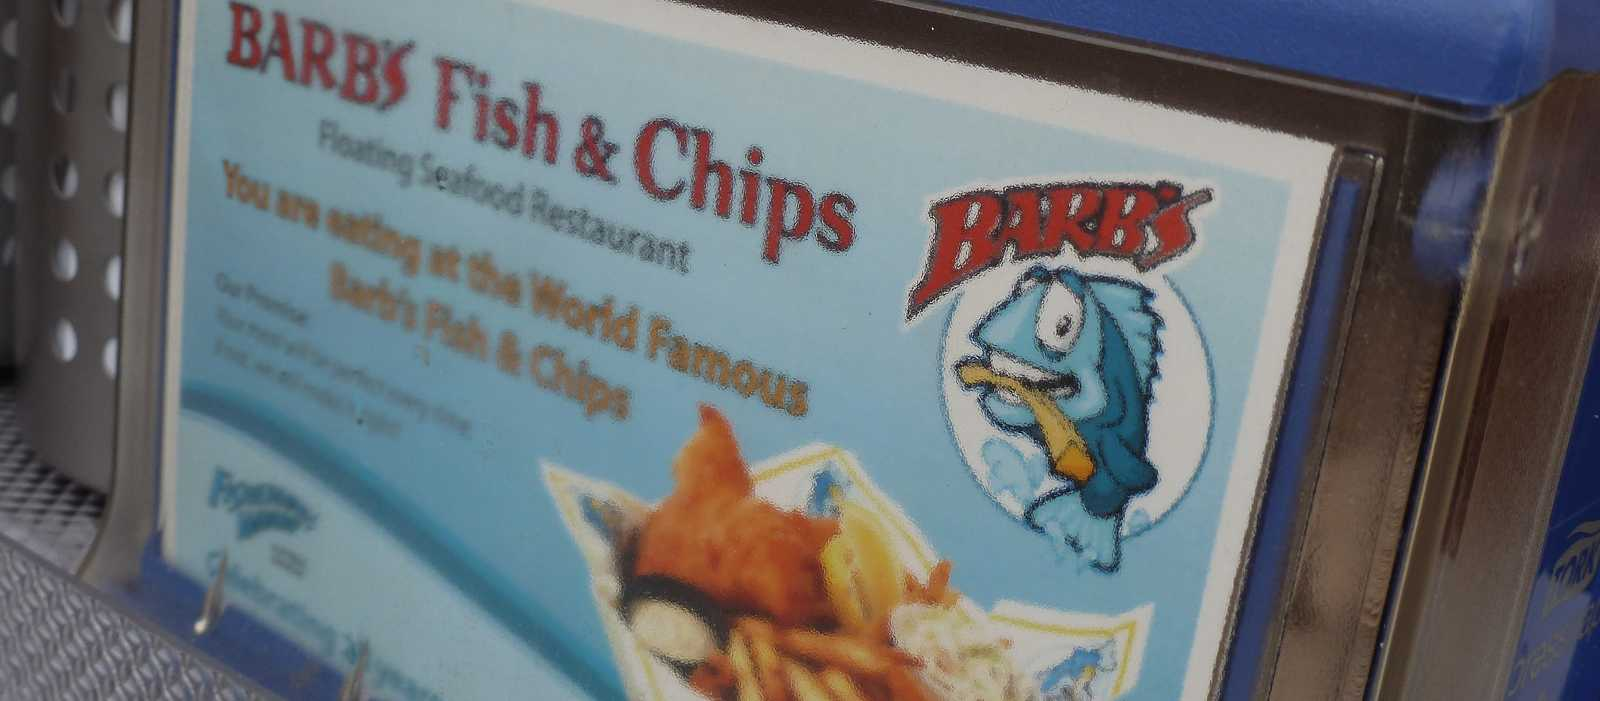 Barb´s Dish & Chips, Victoria